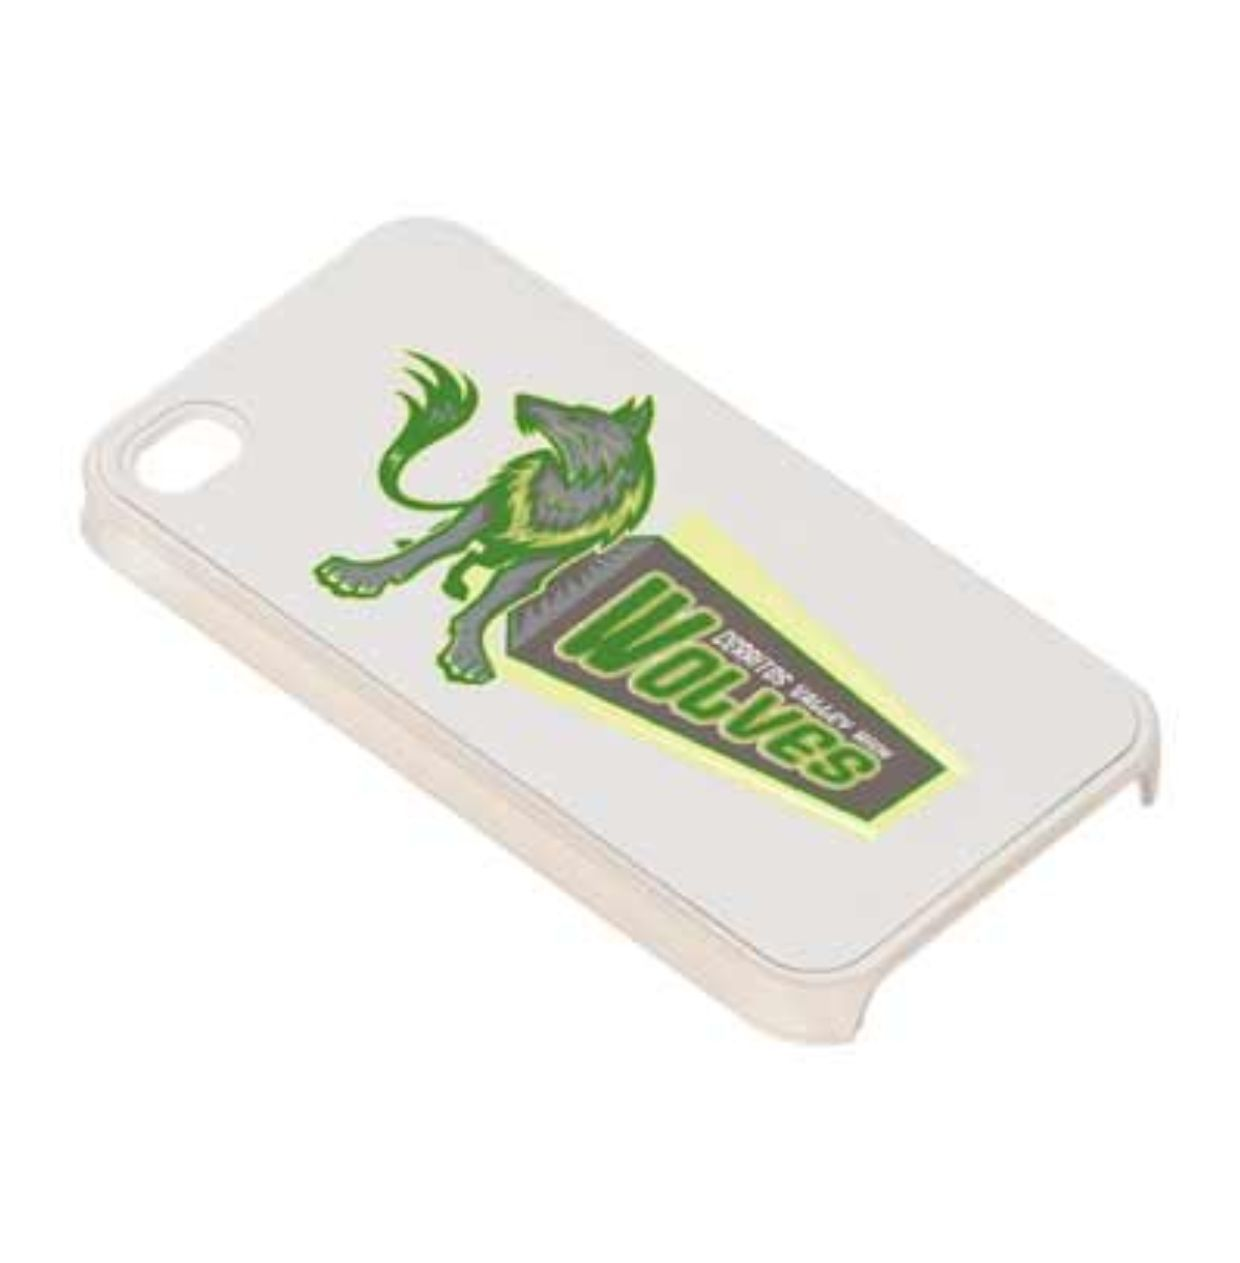 Promote Your Name With Custom iPhone Cases! Visit Us At www.myproviderpromos.com #promotionalproducts #gifts #printing #customprinting